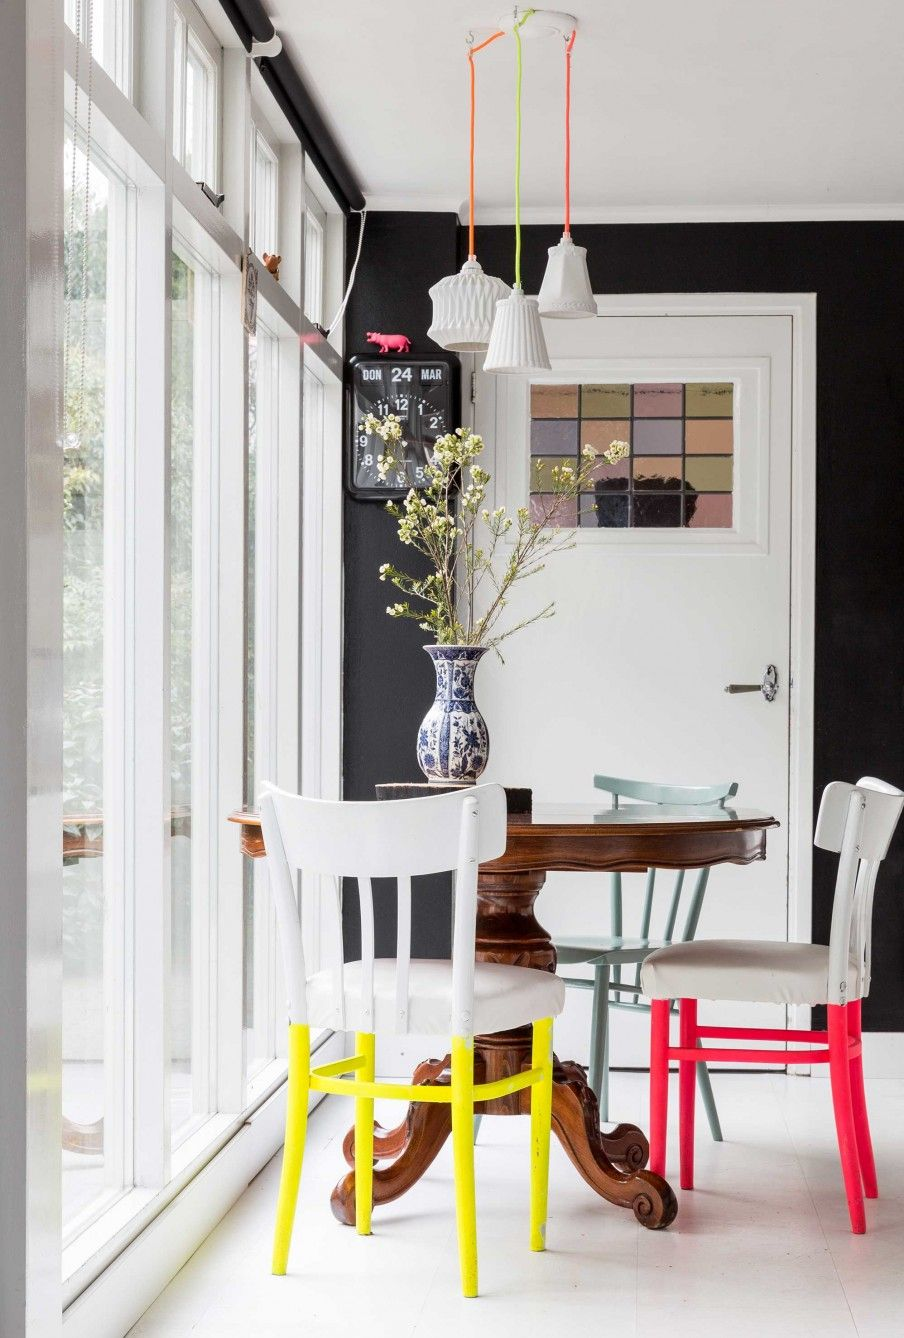 Round antique dining table with neon colored chairs | Dining room ...